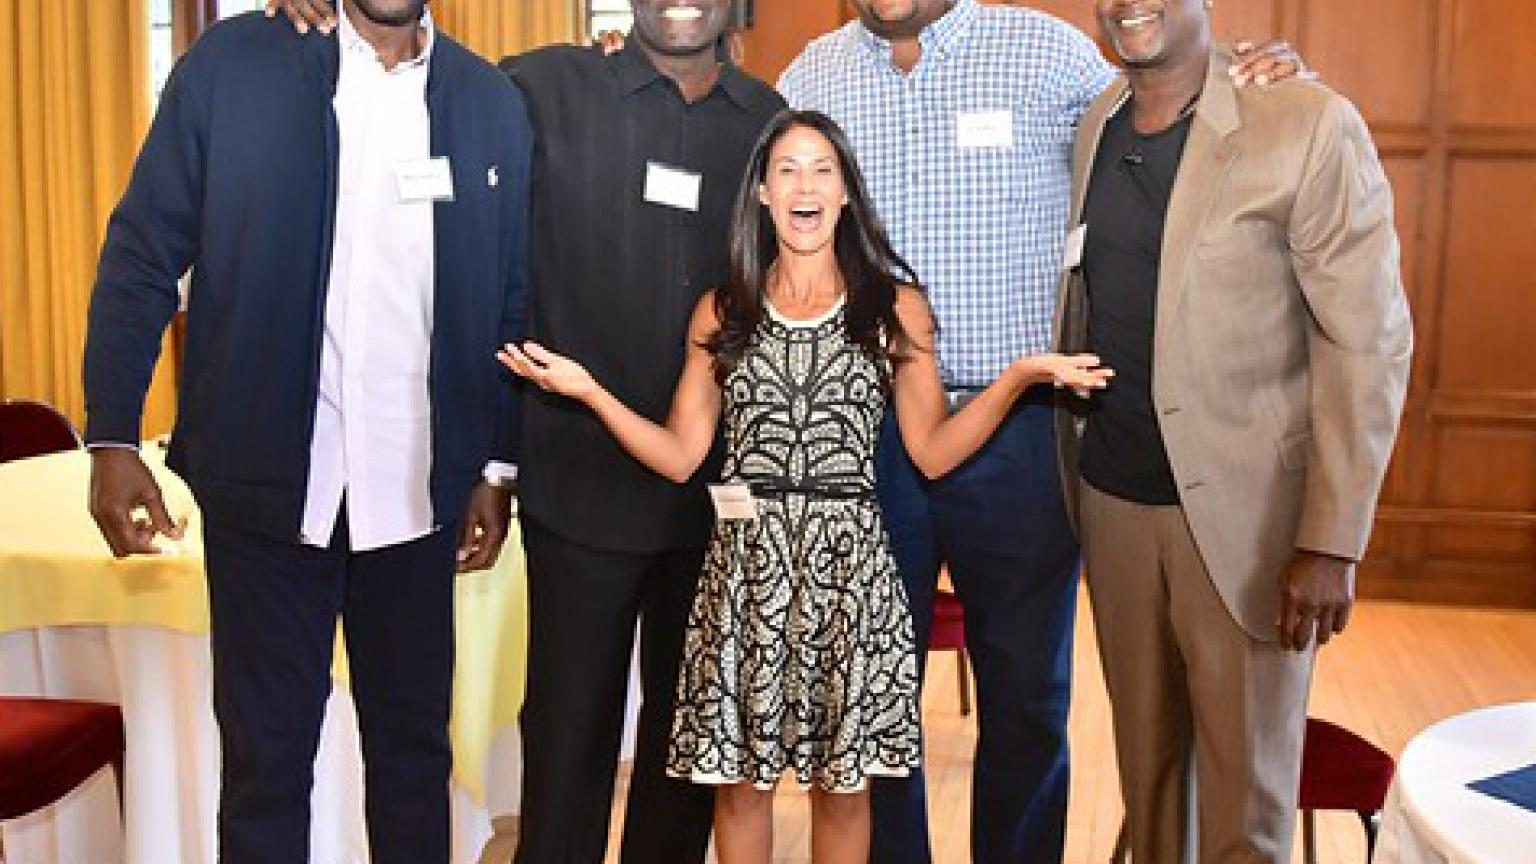 Mark Hughes, Butch Wade, Terry Mills, Richard Rellford, Tracy Wolfson